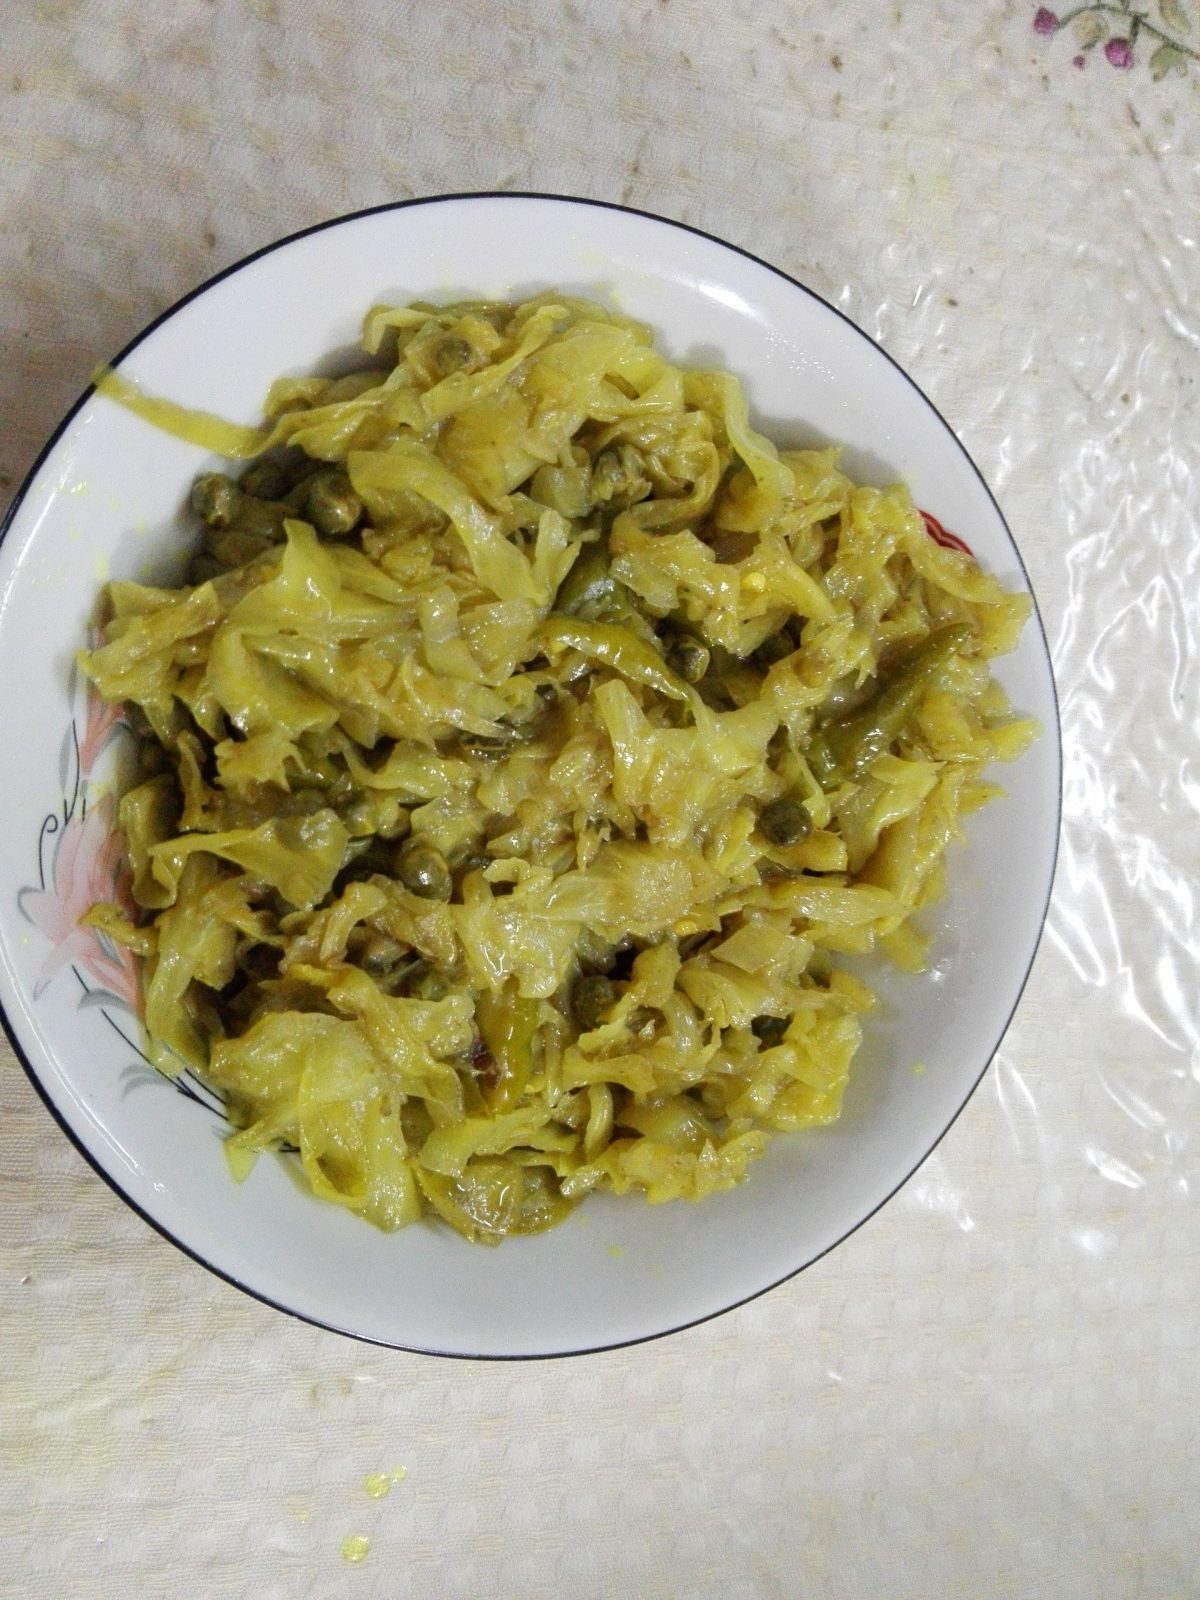 Cabbage with green pea (seasonal) from Mahbuba's Kitchen